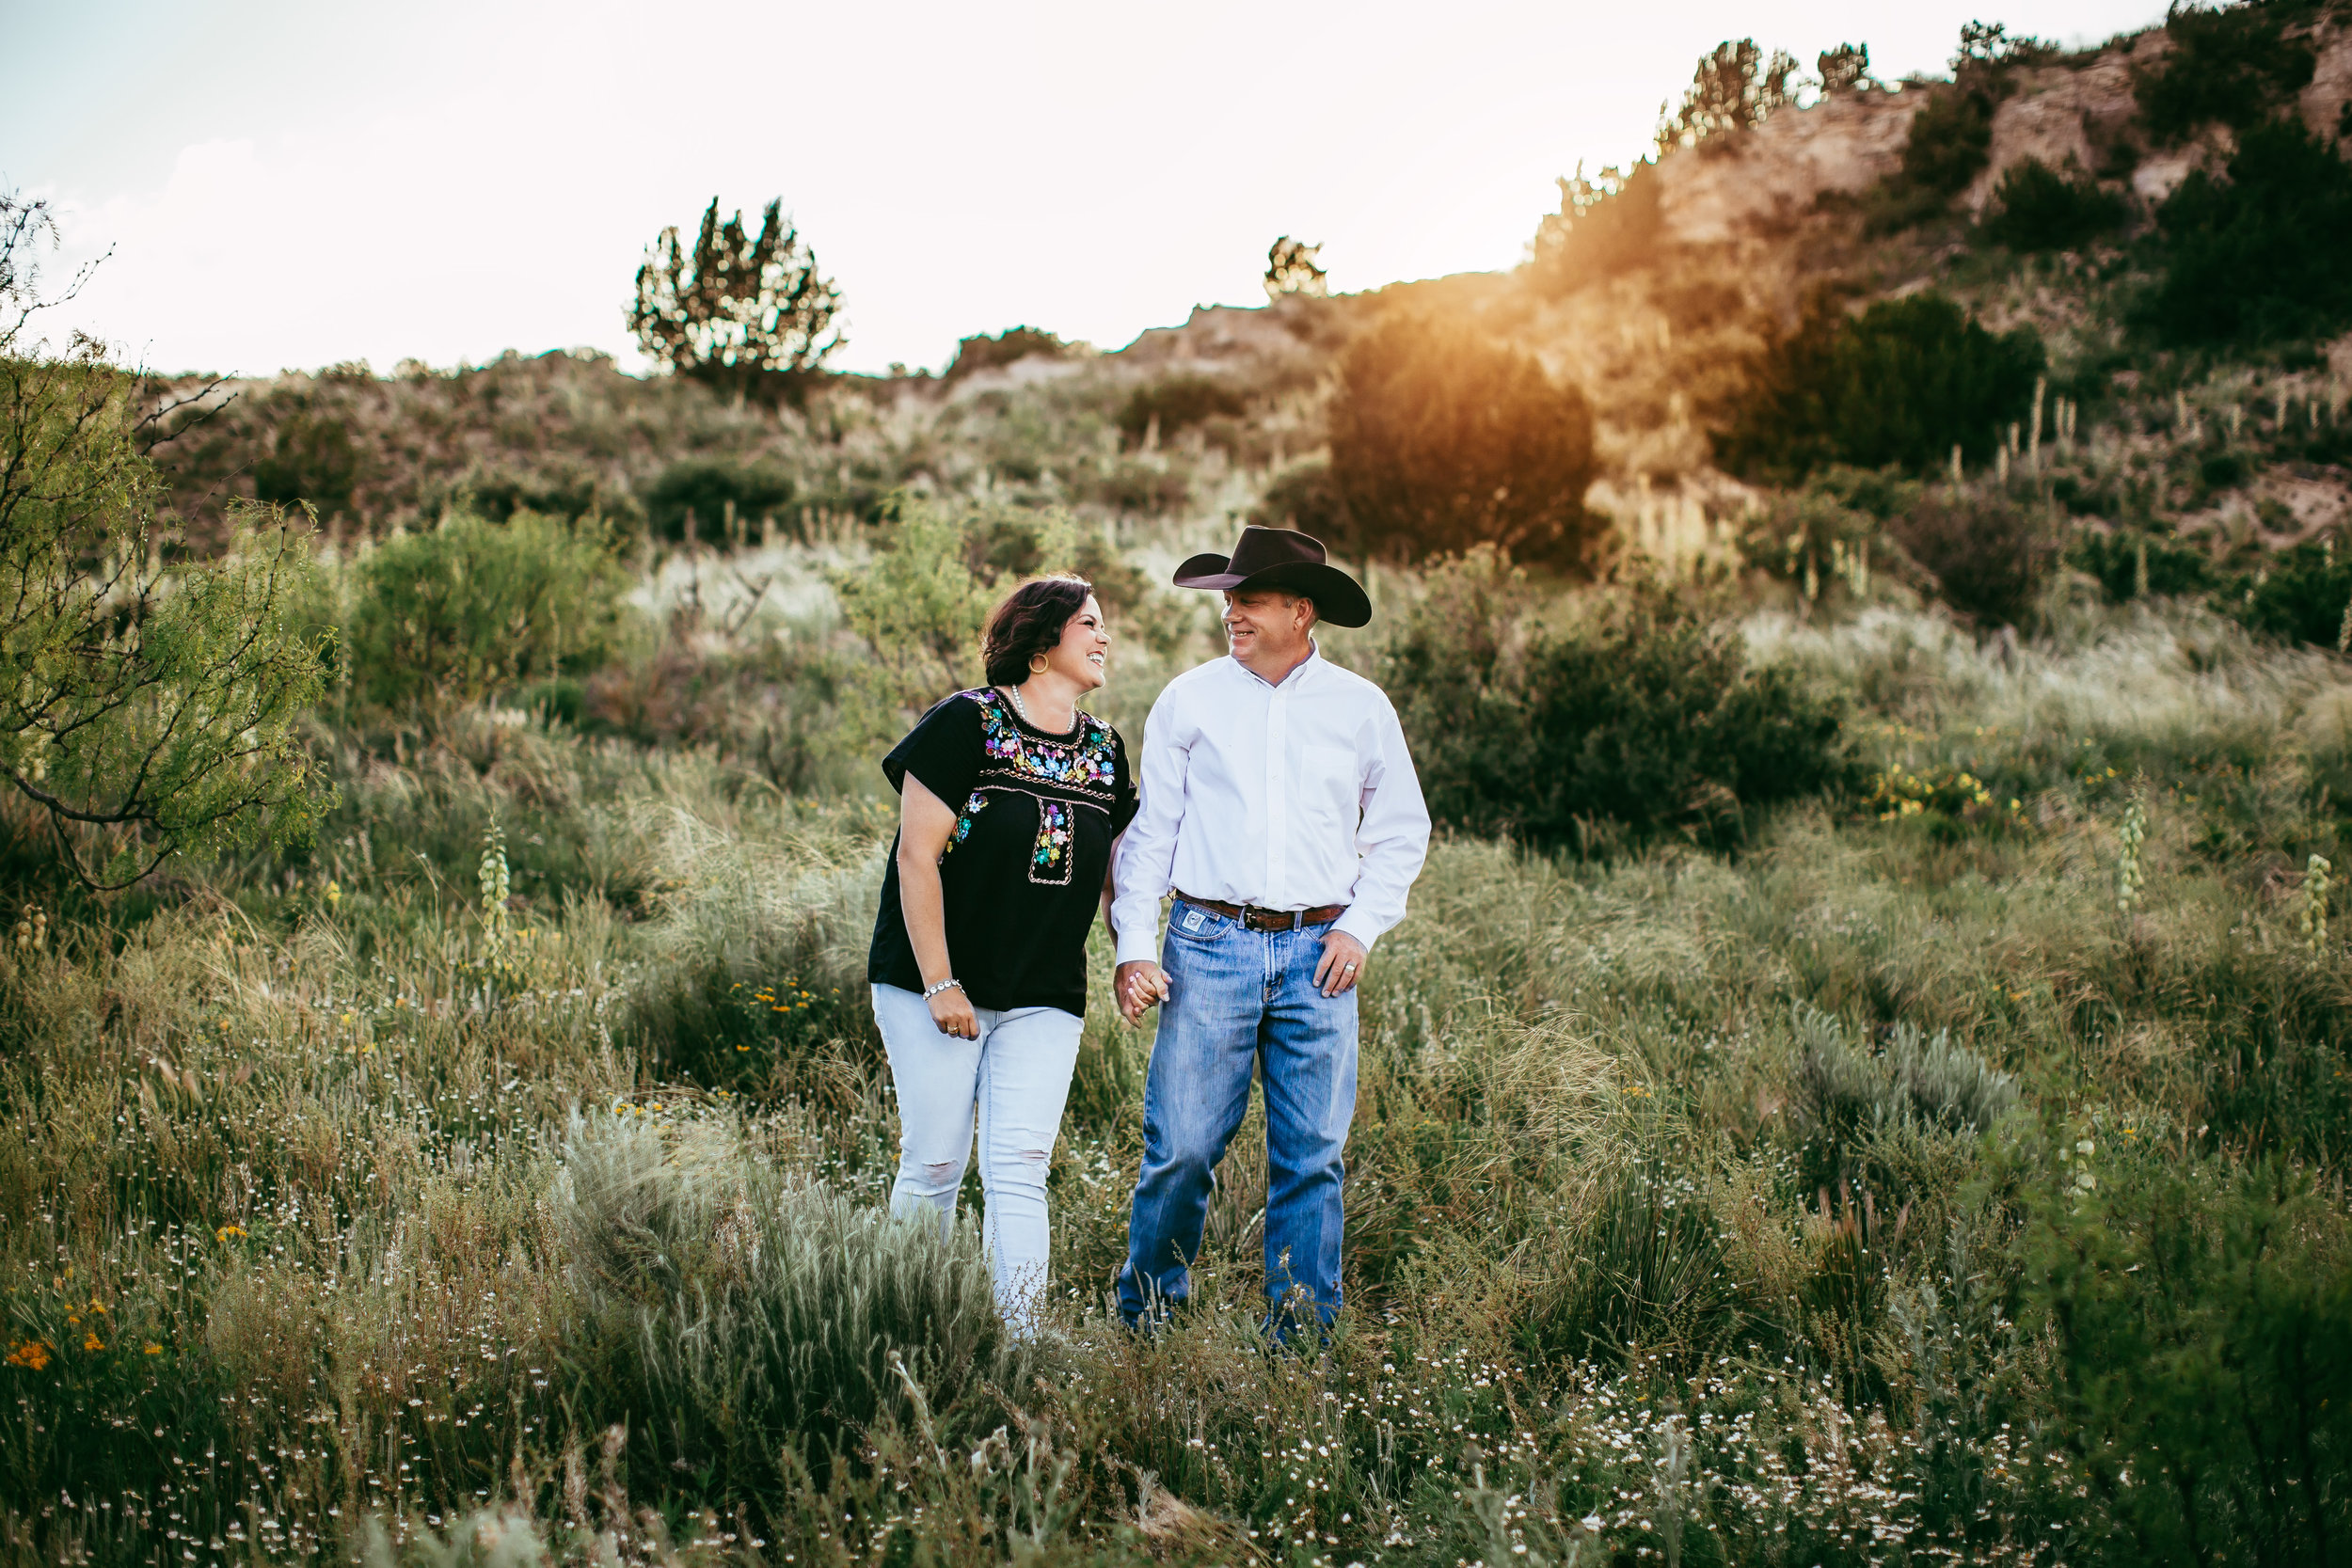 Mom and dad laughing as they walk through their family ranch #tealawardphotography #texasfamilyphotographer #amarillophotographer #amarillofamilyphotographer #lifestylephotography #emotionalphotography #familyphotosoot #family #lovingsiblings #purejoy #familyphotos #familyphotographer #greatoutdoors